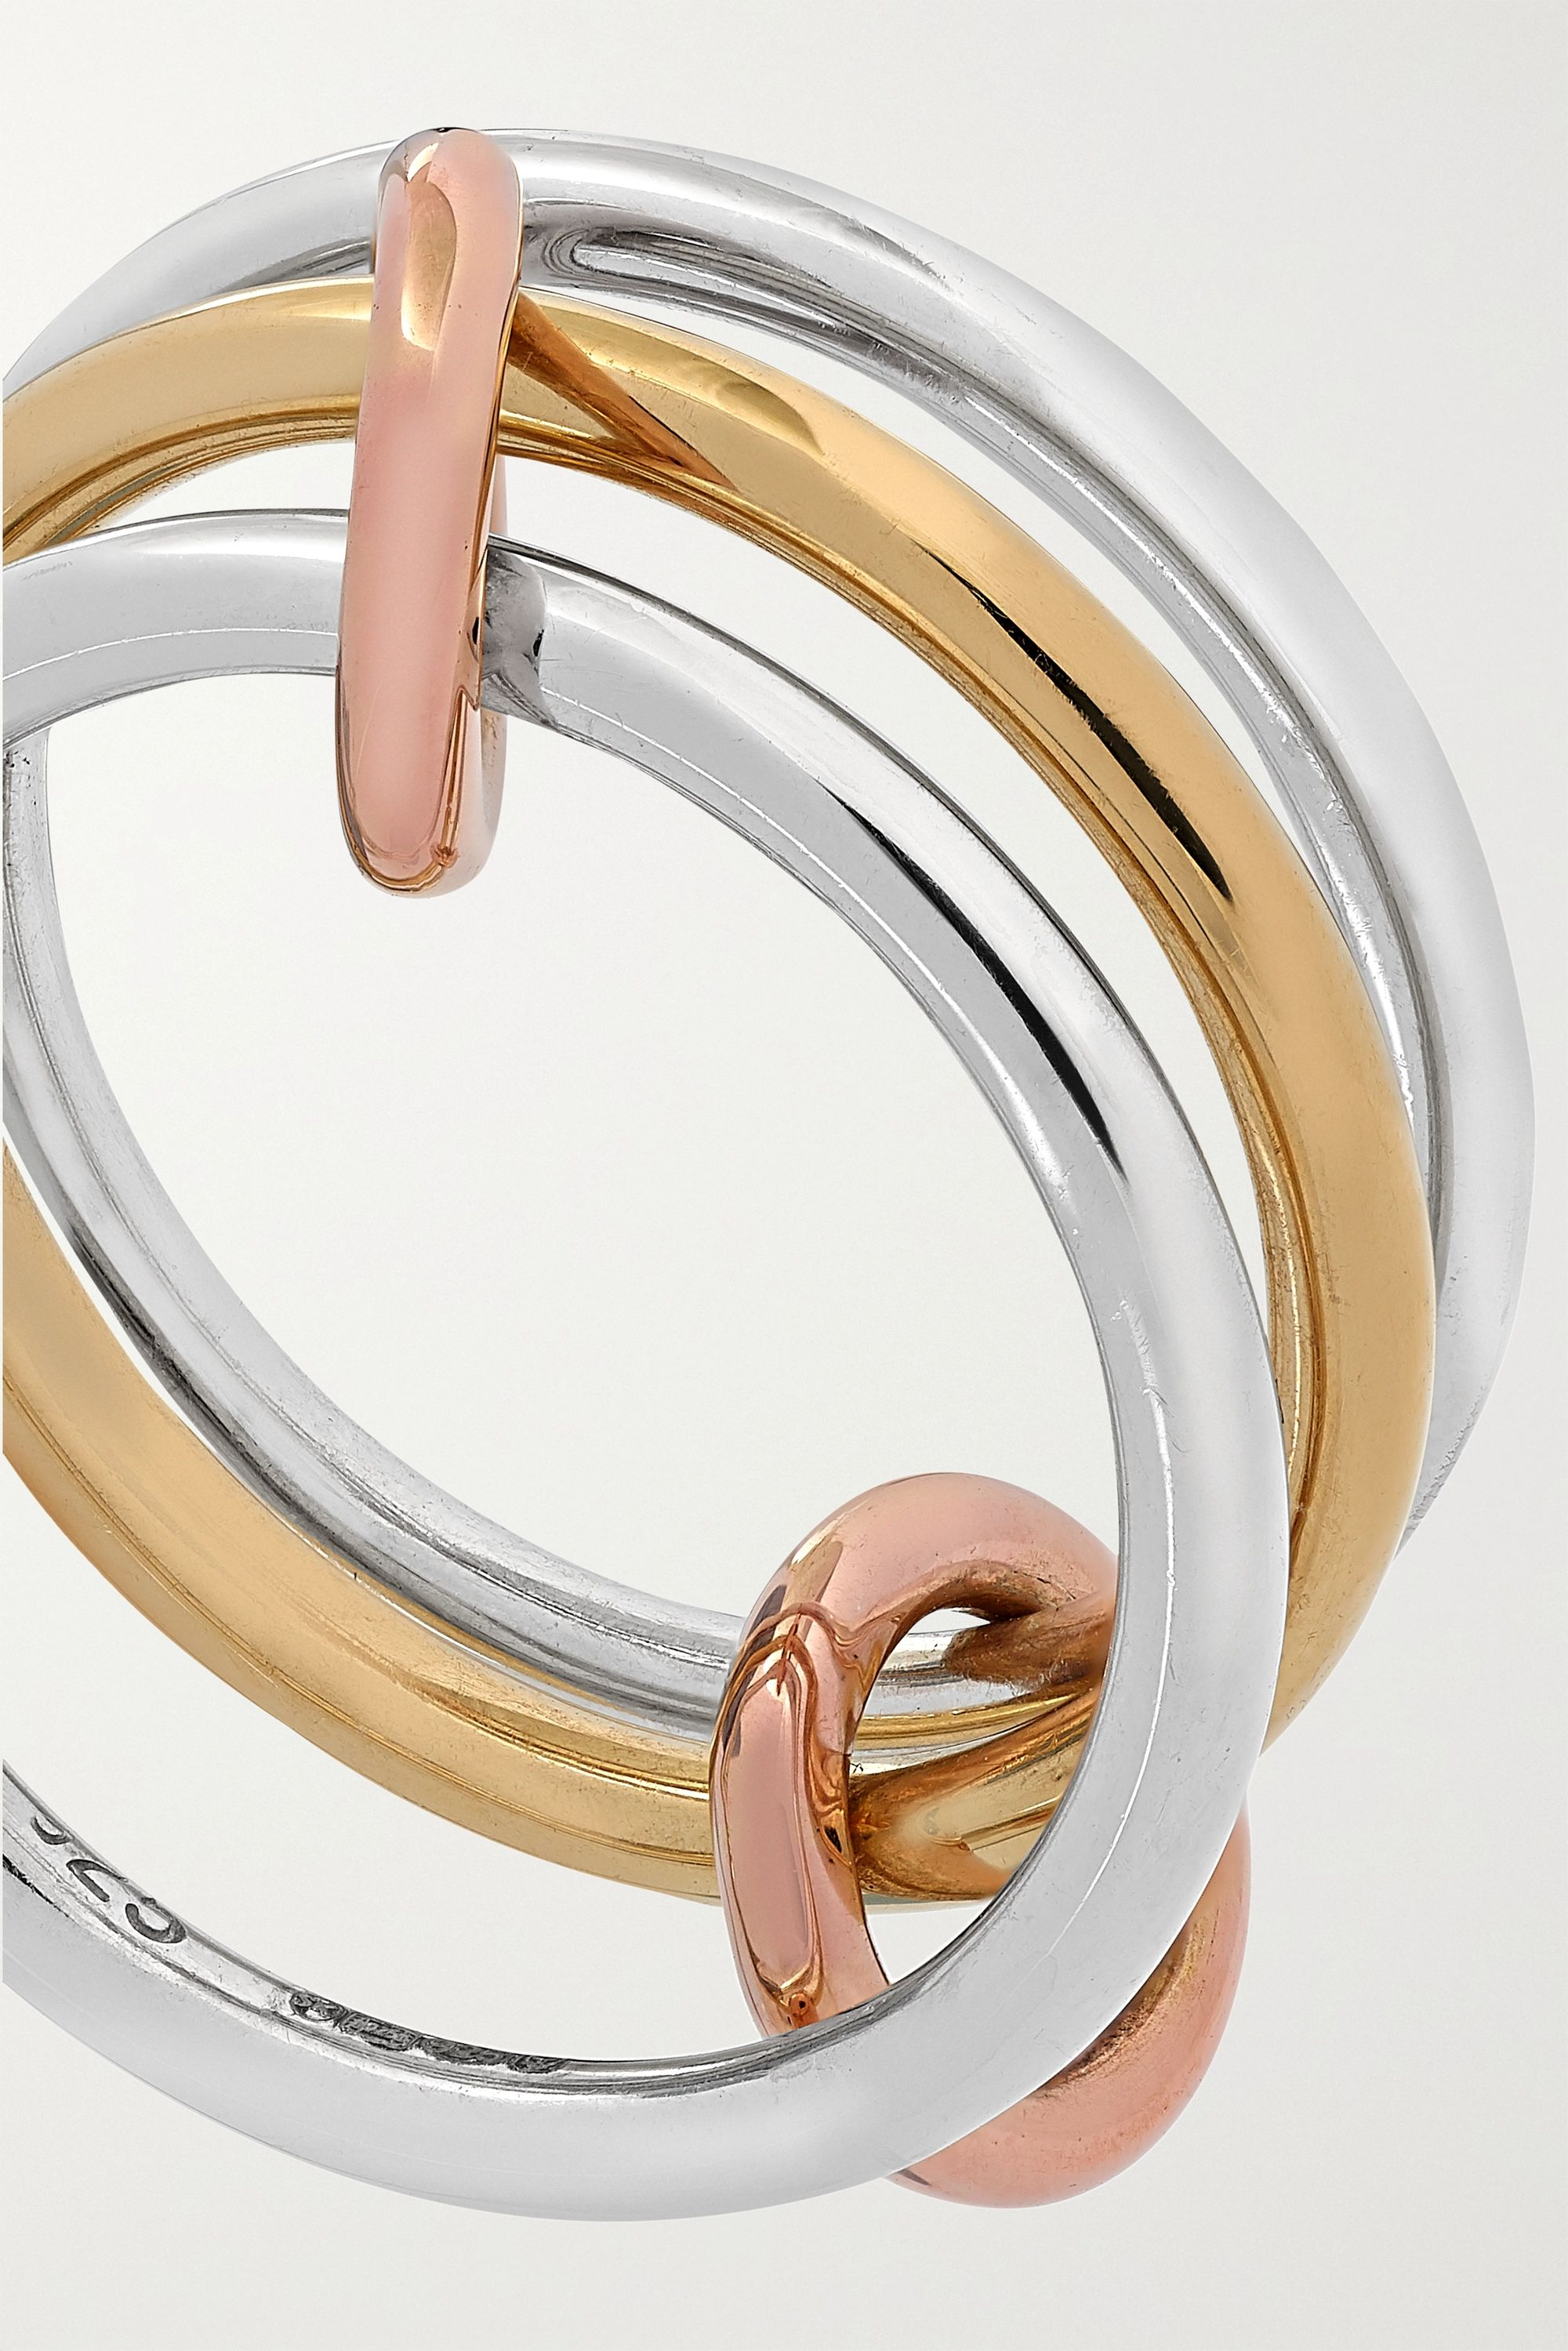 Spinelli Kilcollin Solarium set of three 18-karat yellow and rose gold and sterling silver rings